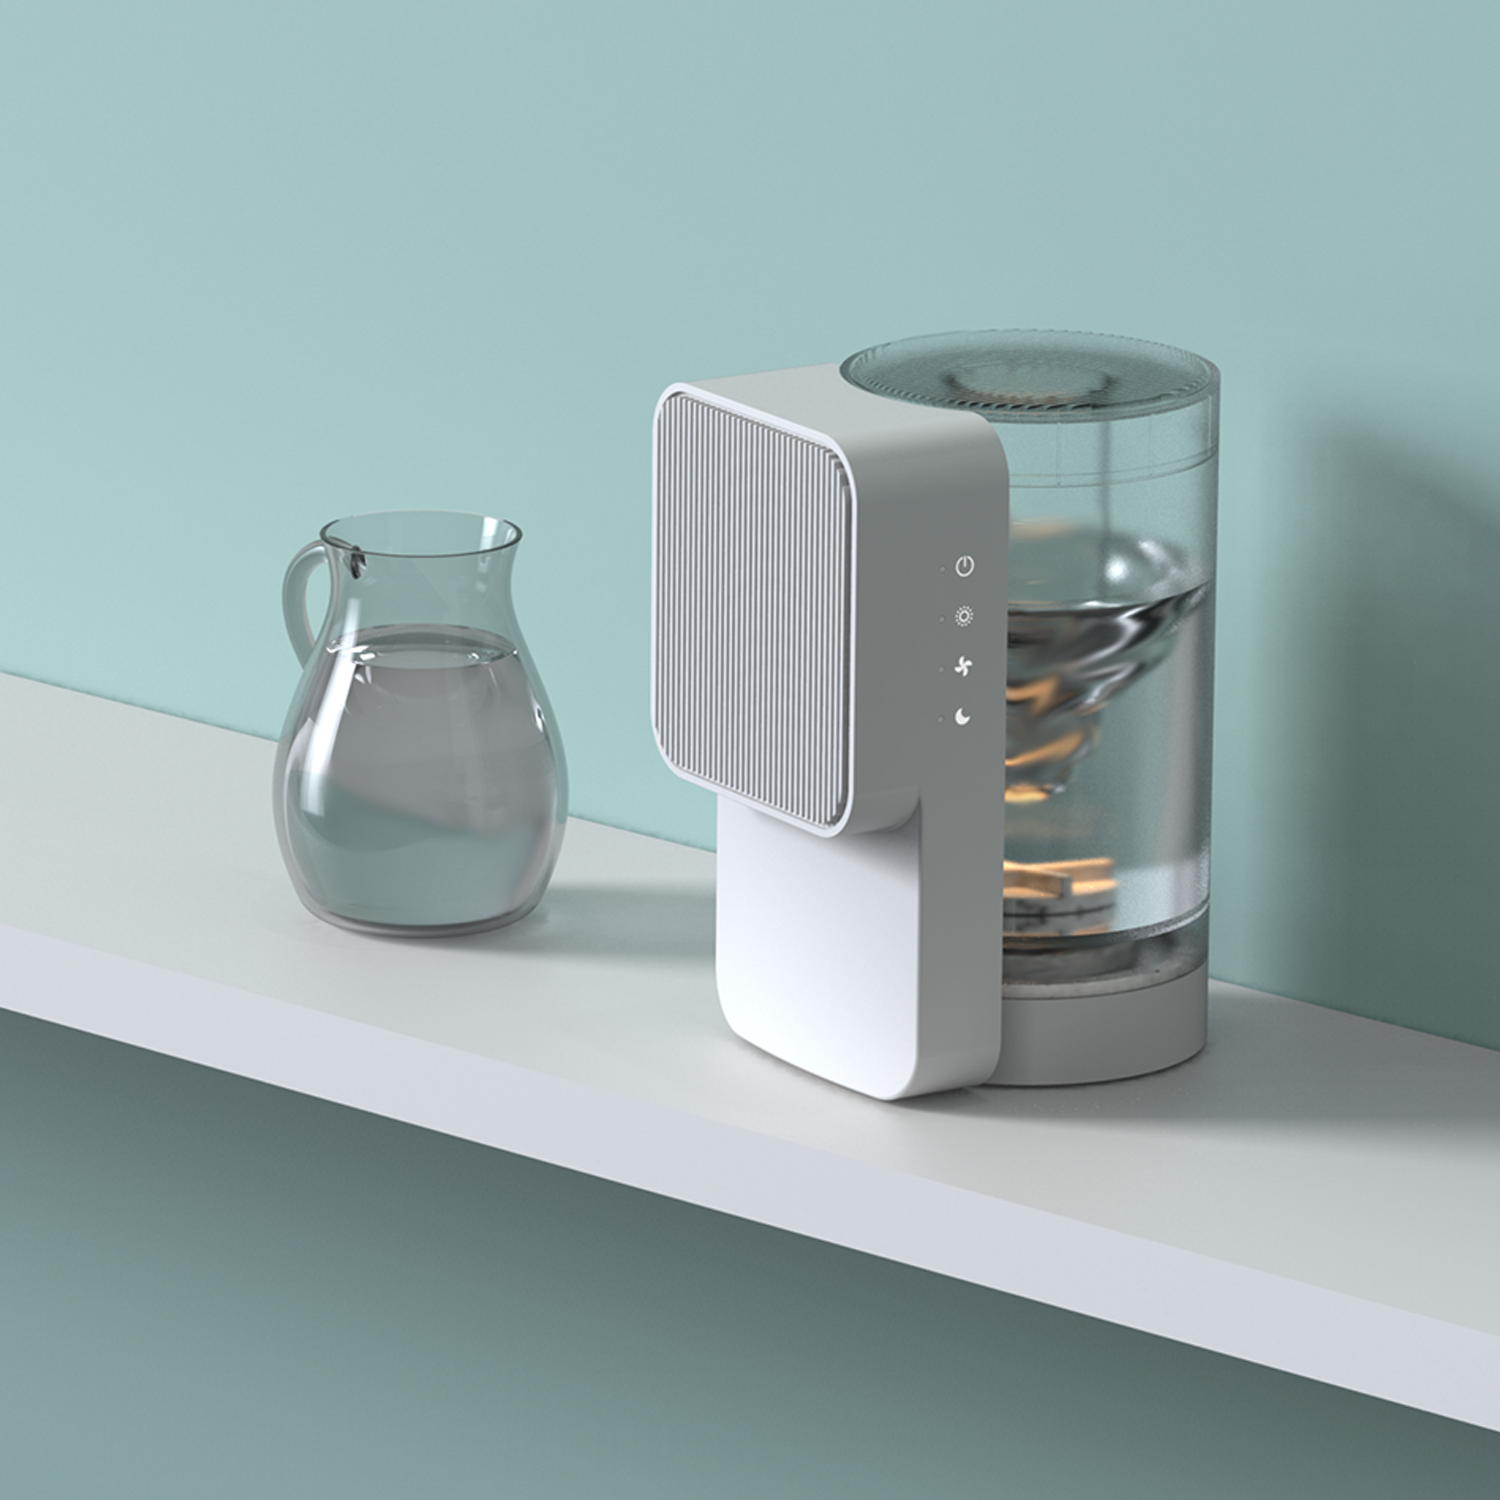 Humidifier & Air Purifier Product Design